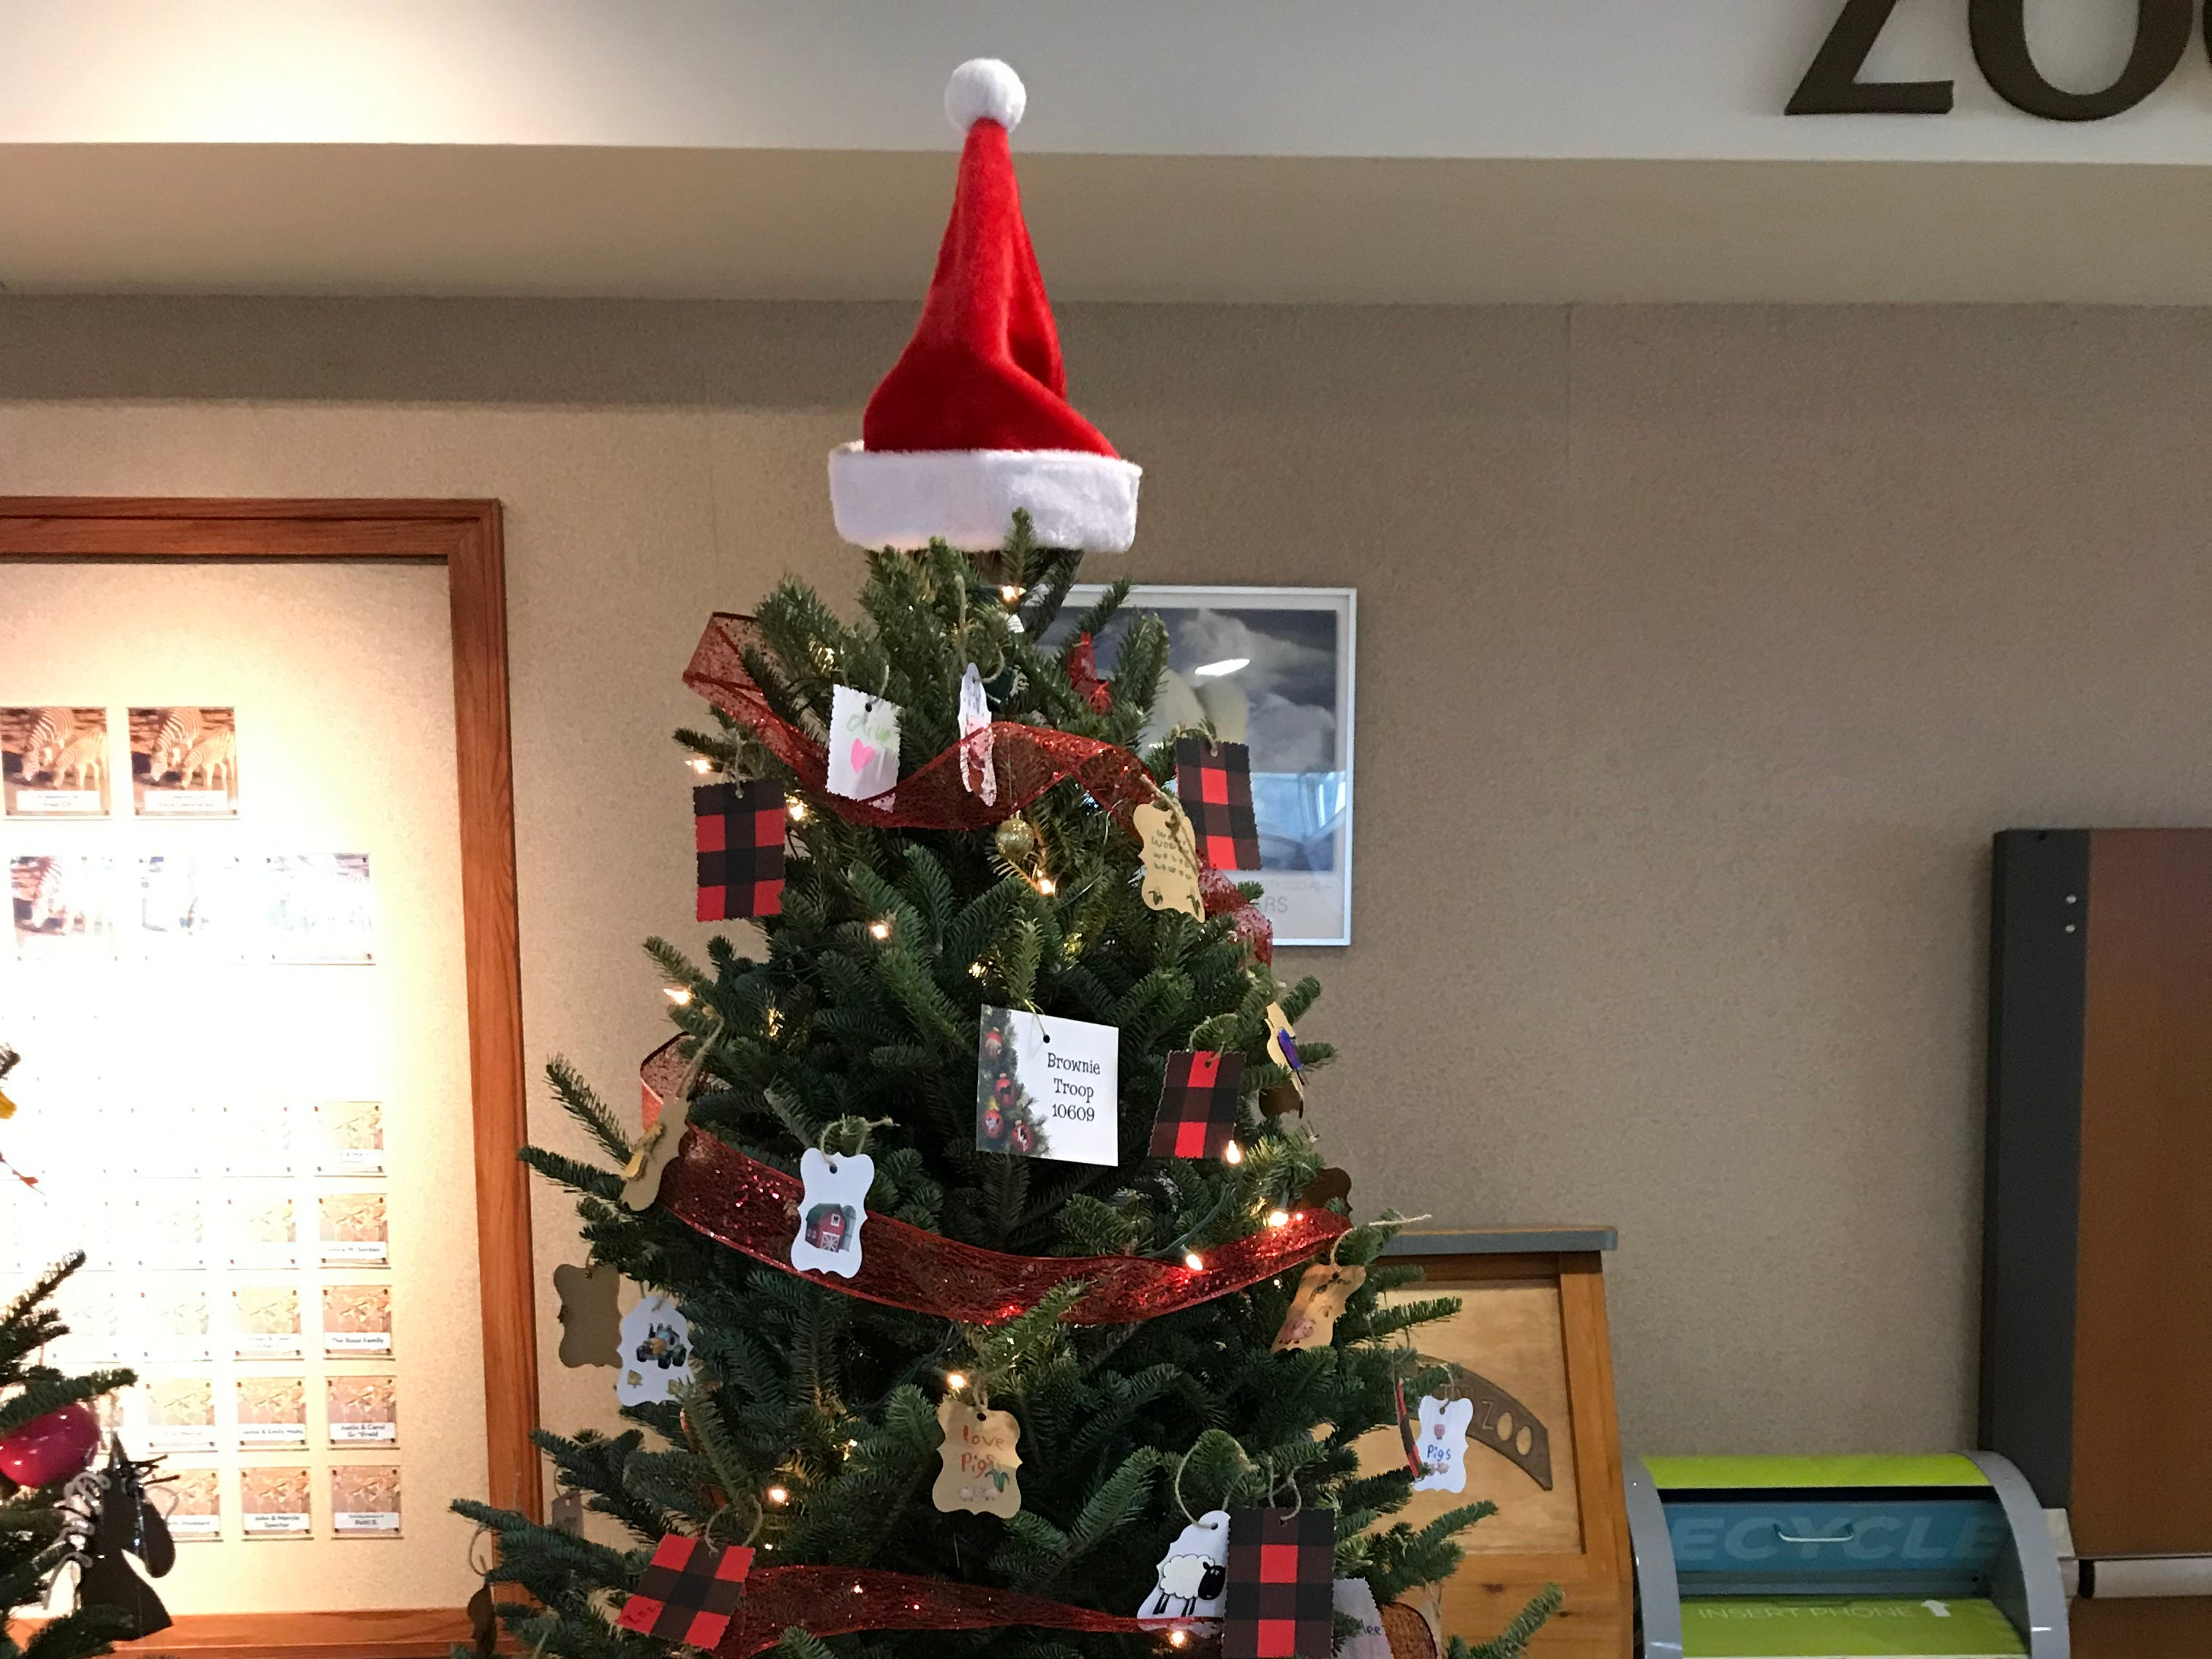 The Milwaukee Zoological Society invites kids every year to decorate Christmas trees at the zoo, like this one decorated by a Brownie troop.